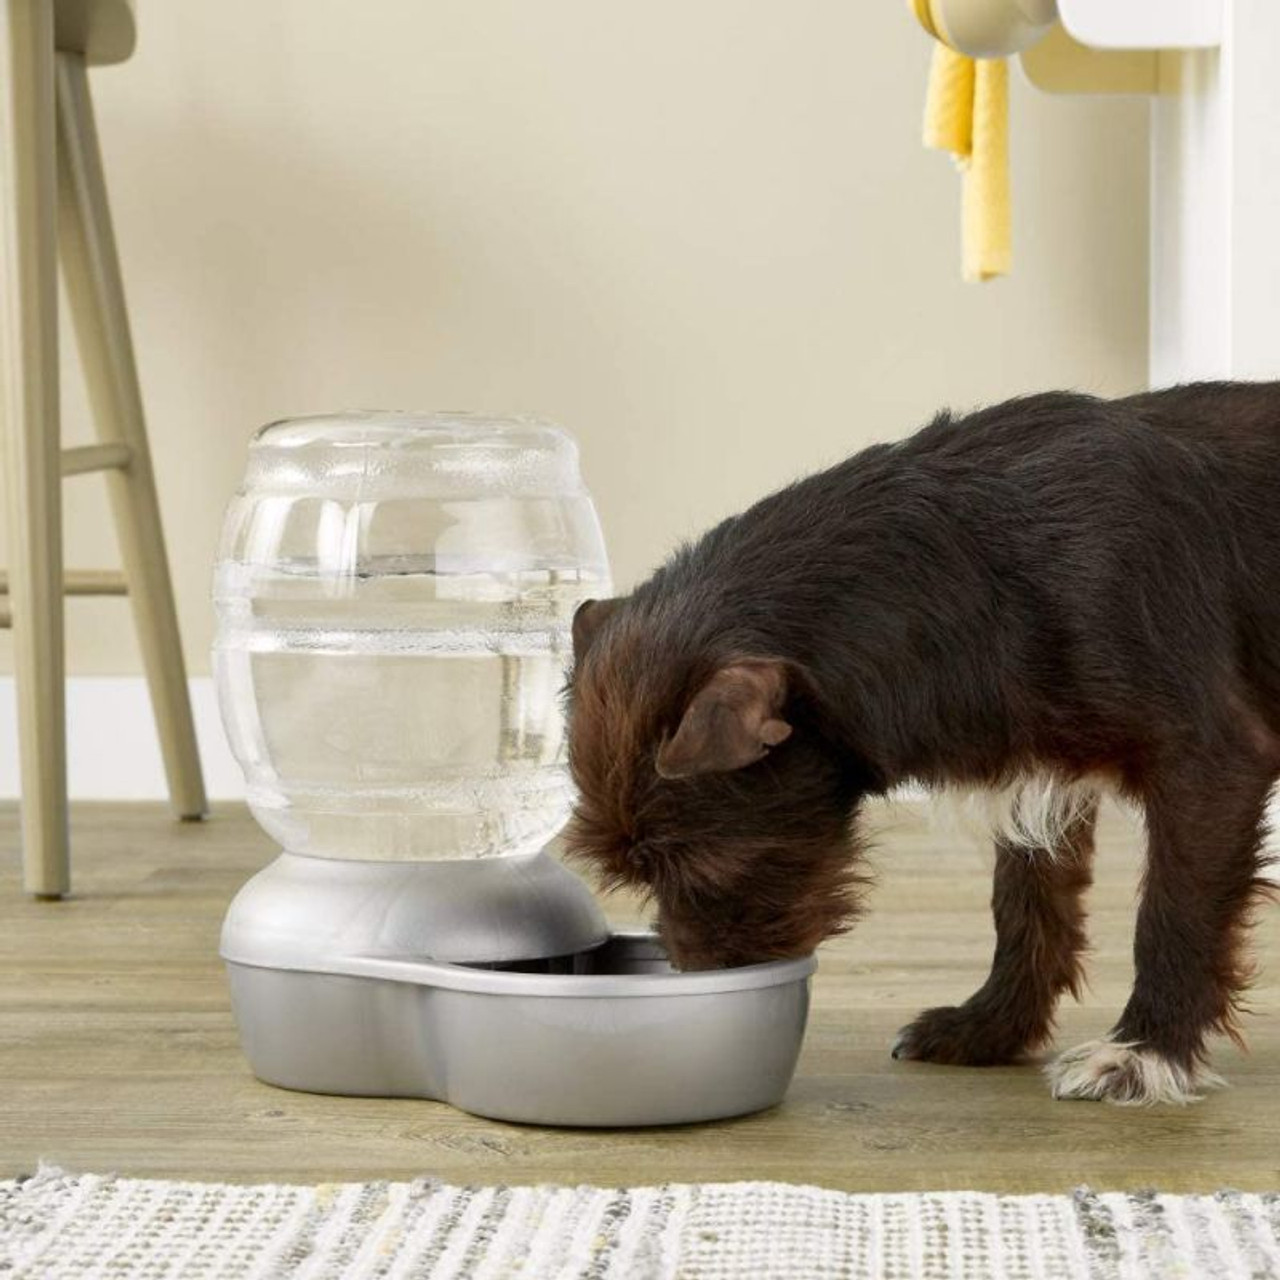 Petmate Replendish Gravity Waterer With Microban for Cats and Dogs - 2.5 Gallons